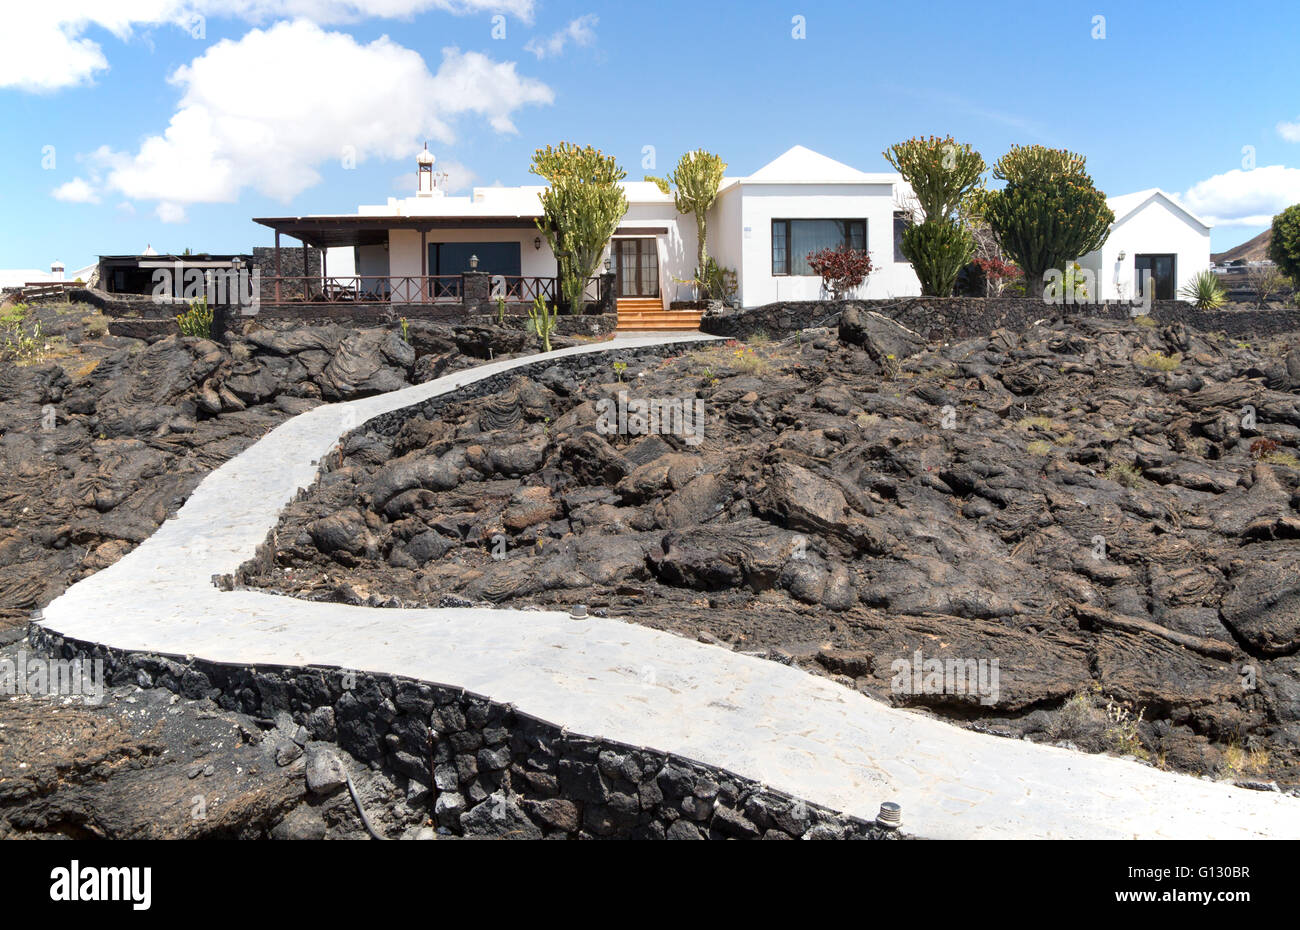 Garden path crossing solidified pahoehoe or ropey lava field to house, Tahiche, Lanzarote, Canary Islands, Spain - Stock Image